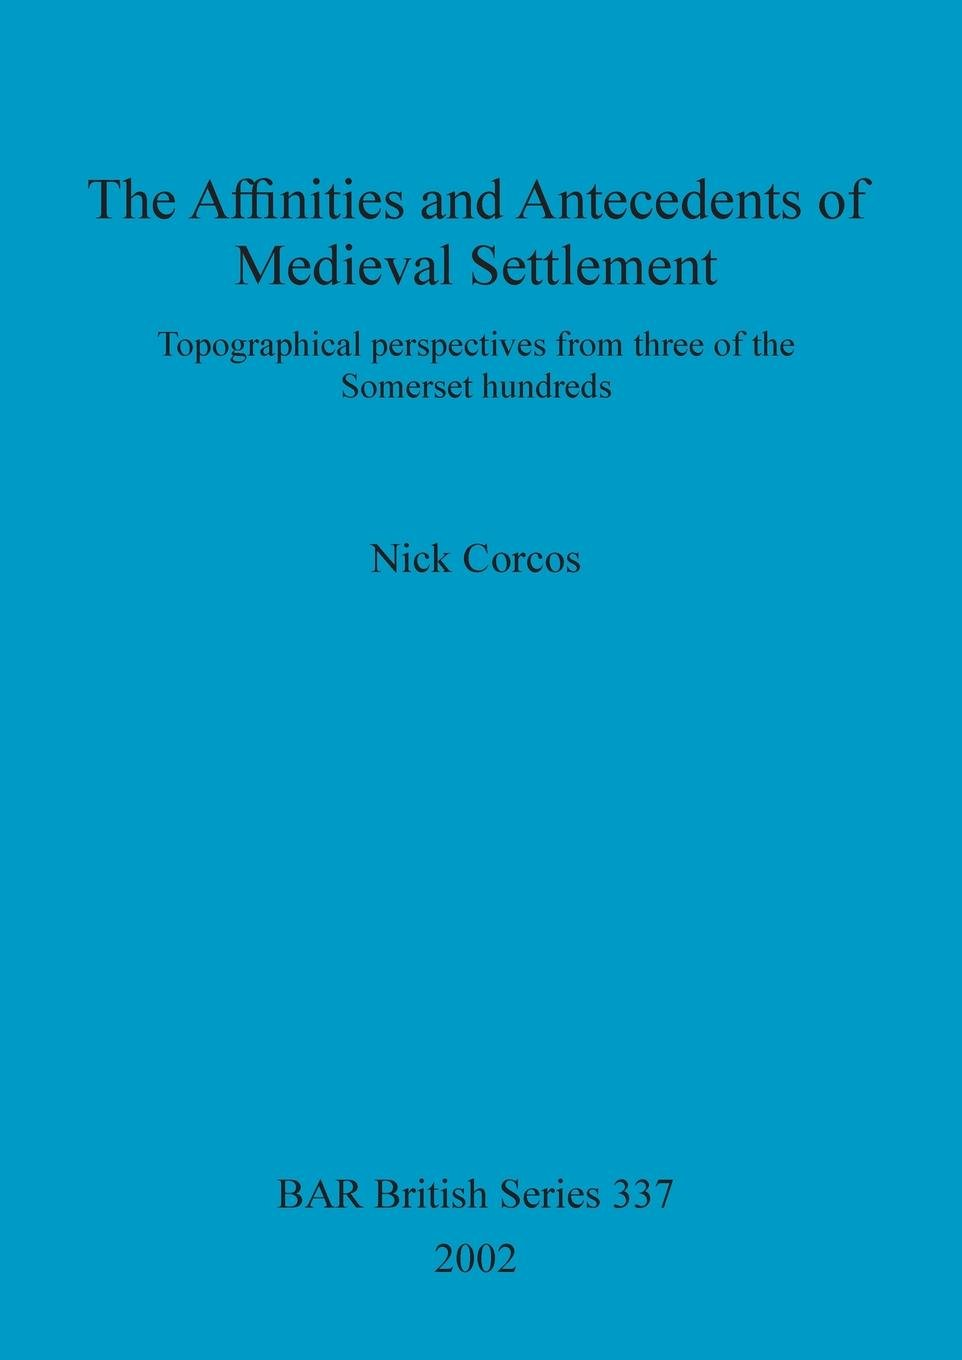 Download The Affinities and Antecedents of Medieval Settlement: Topographical perspectives from three of the Somerset hundreds (BAR Archaeopress) pdf epub